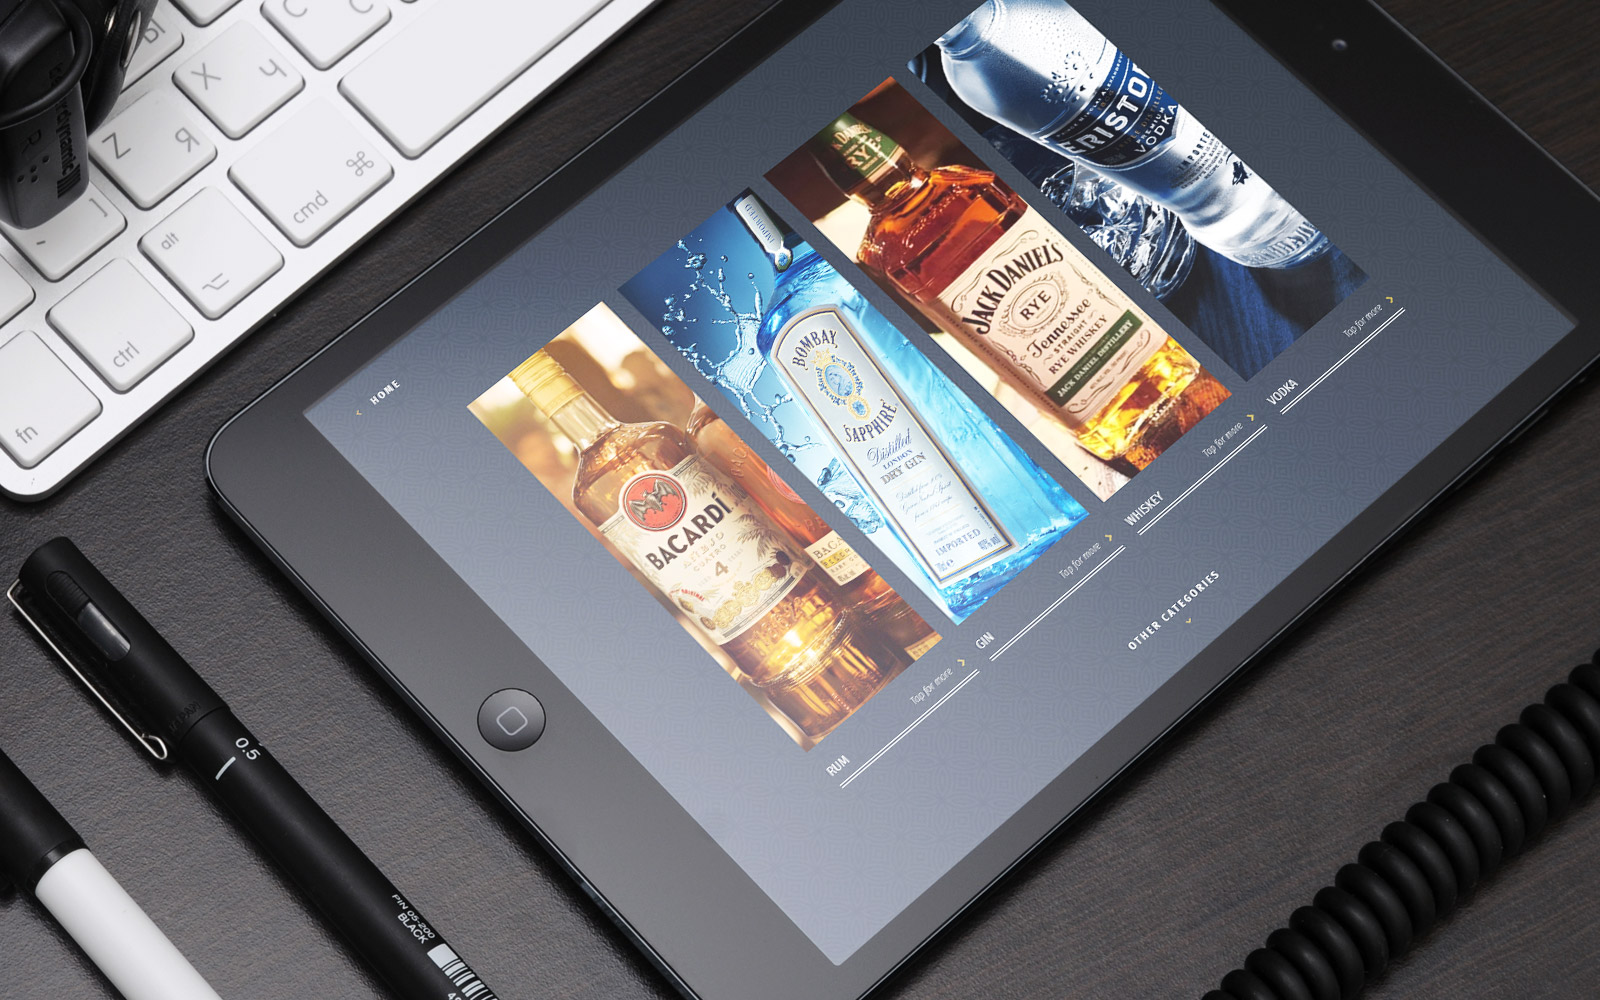 Example of a sales enablement tool developed for drinks company Bacardi